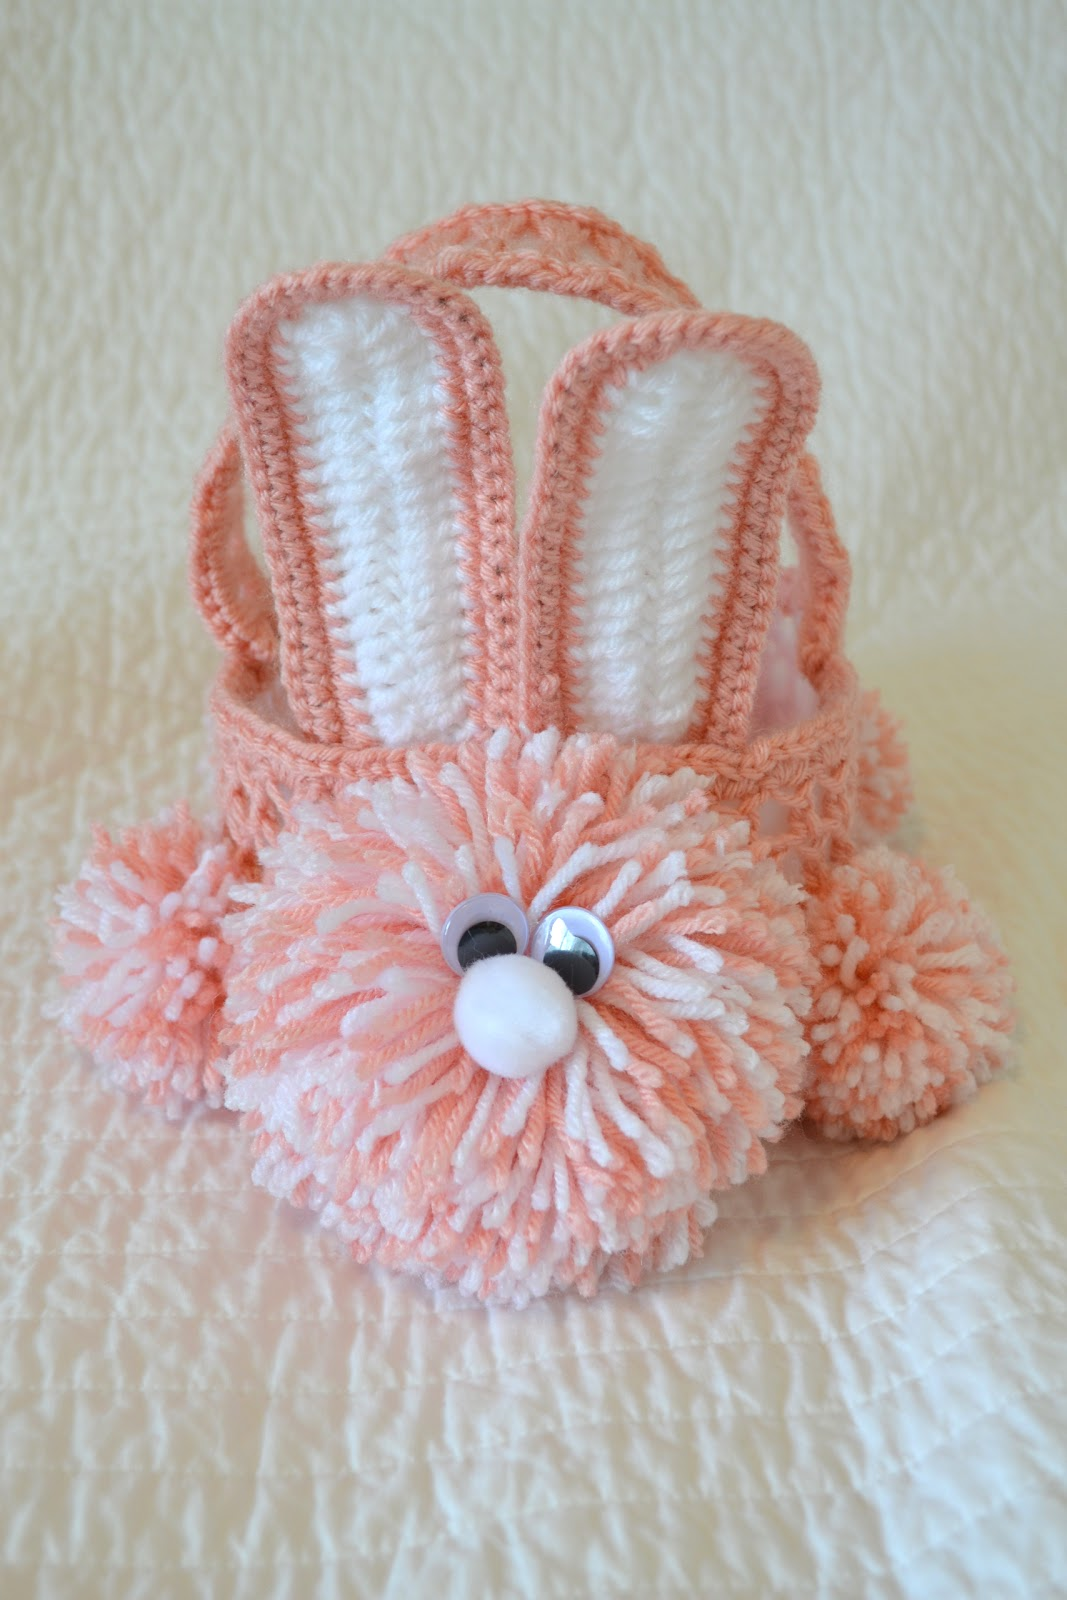 Crochet Easter Basket : All Things Bright and Beautiful: Crochet Easter Bunny Basket